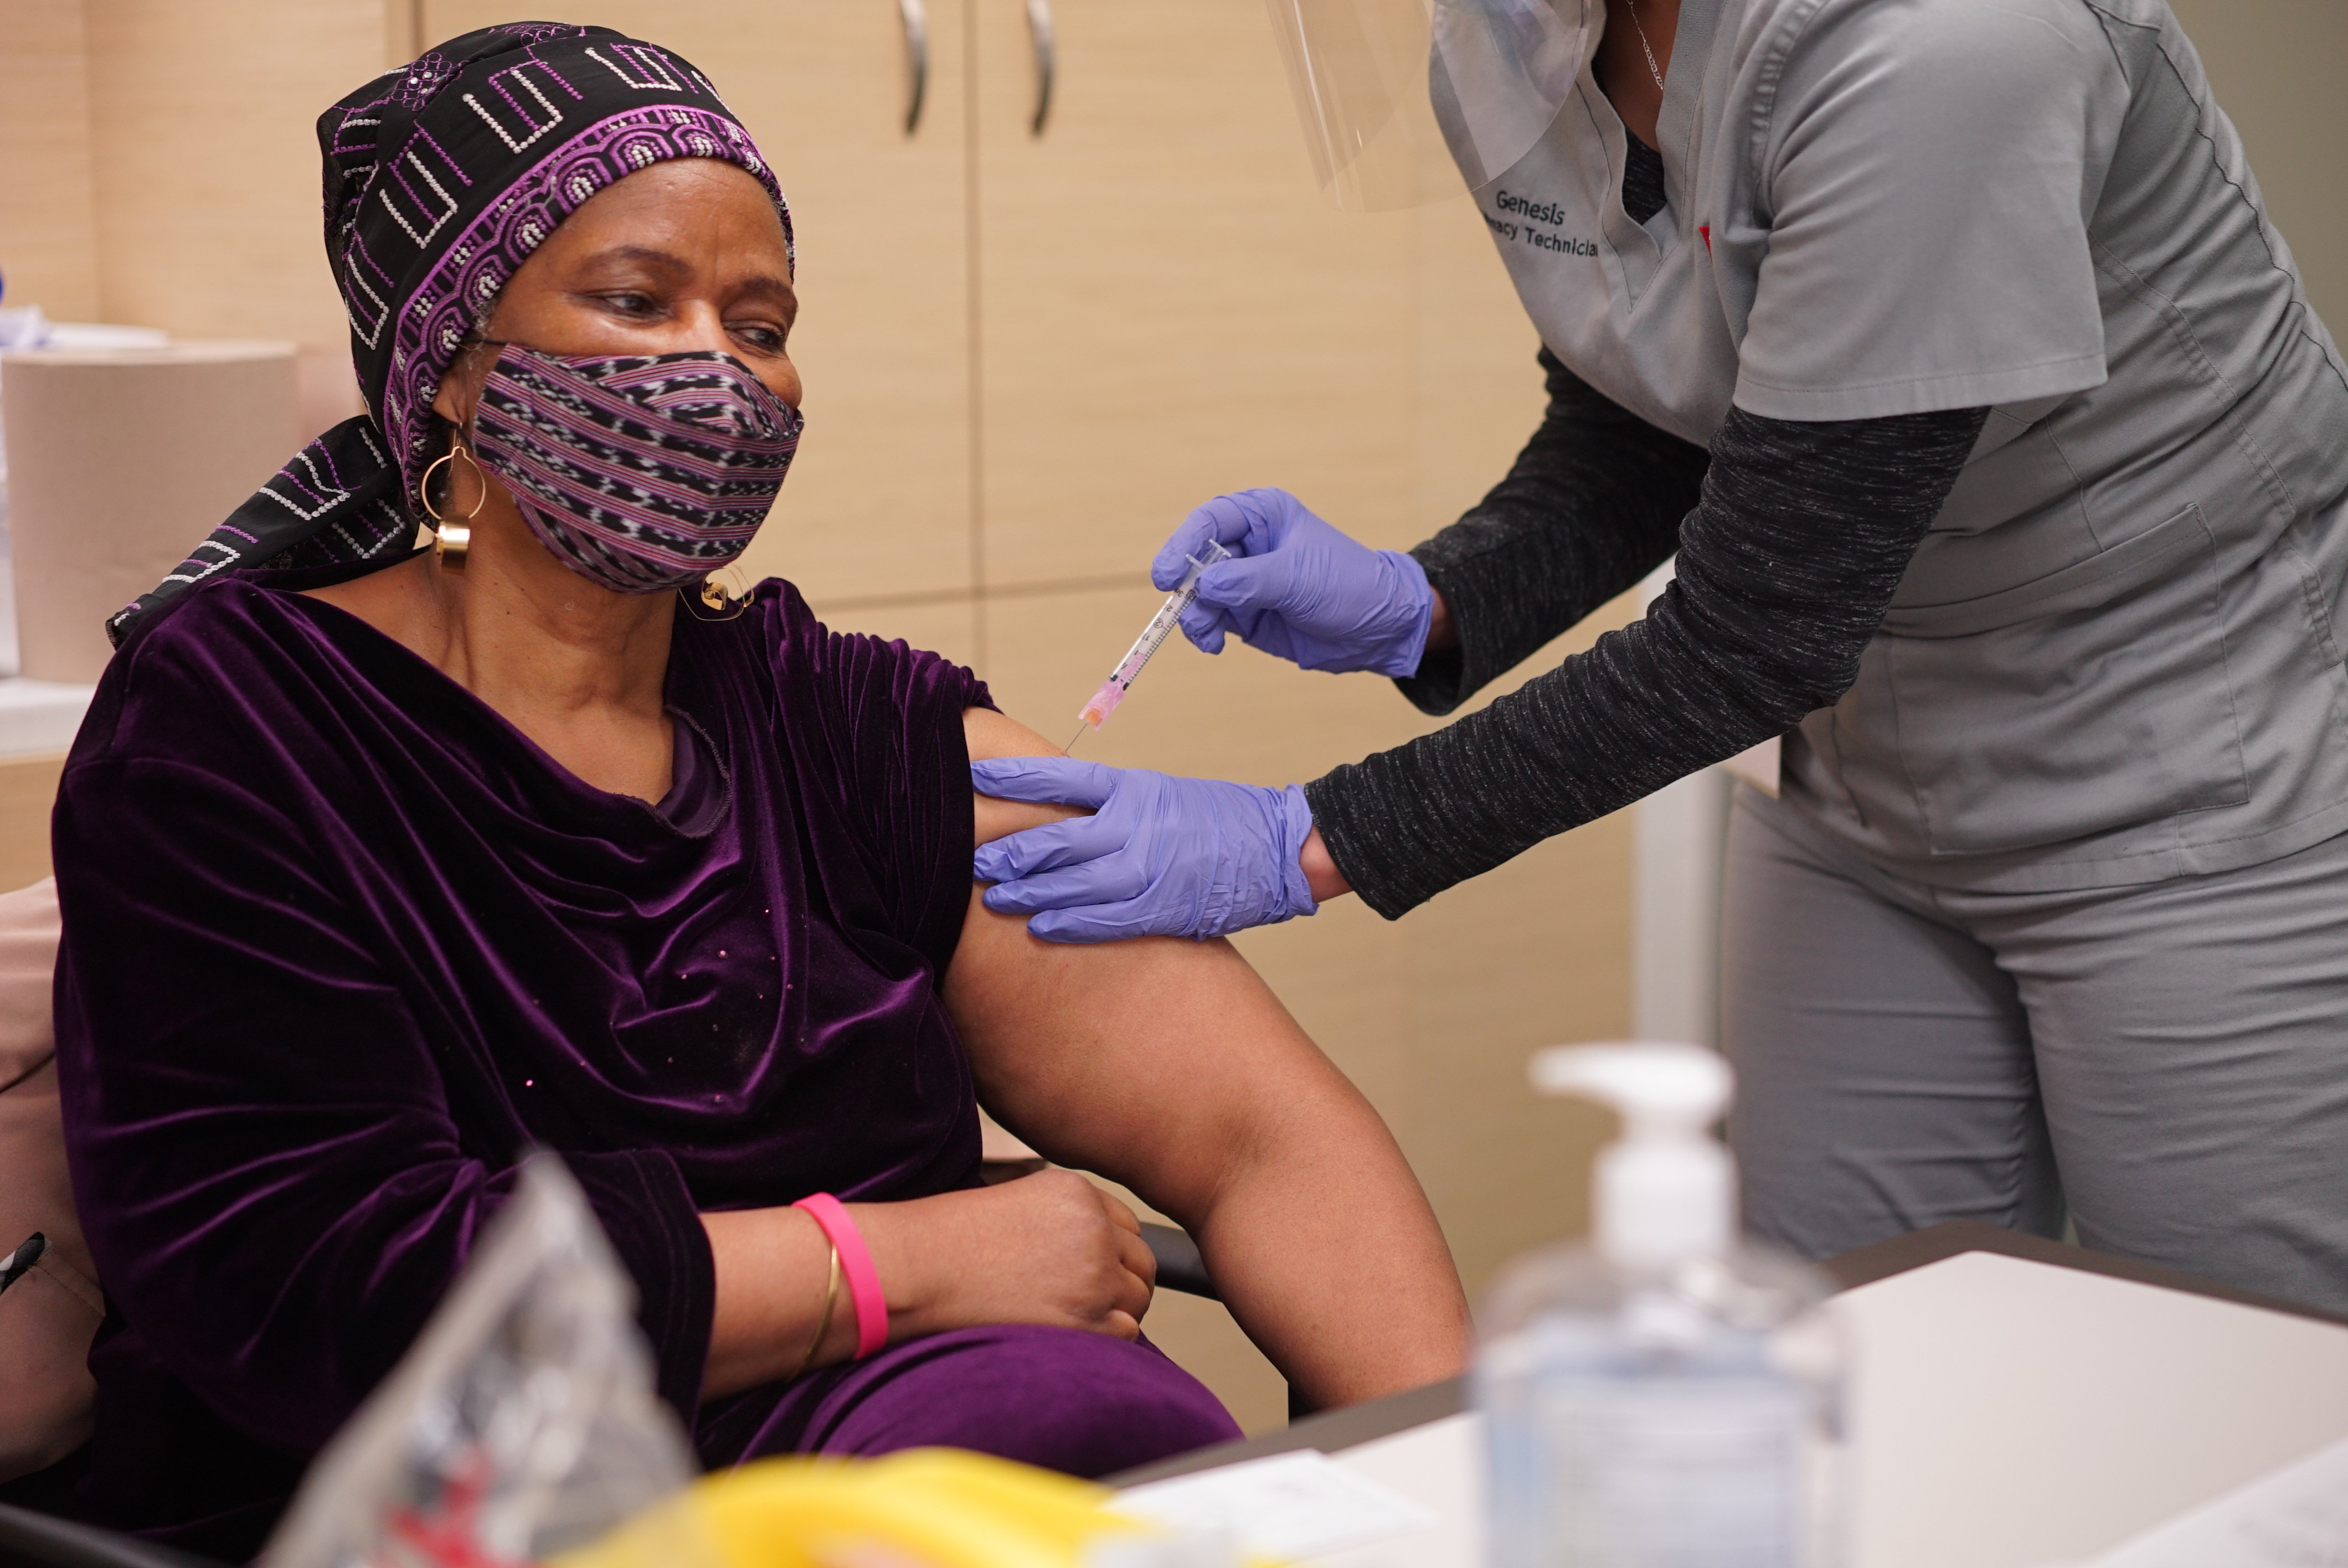 A nurse gives UN Women executive director, Phumzile Mlambo Ngcuka her first dose of the COVID-19 Vaccine.